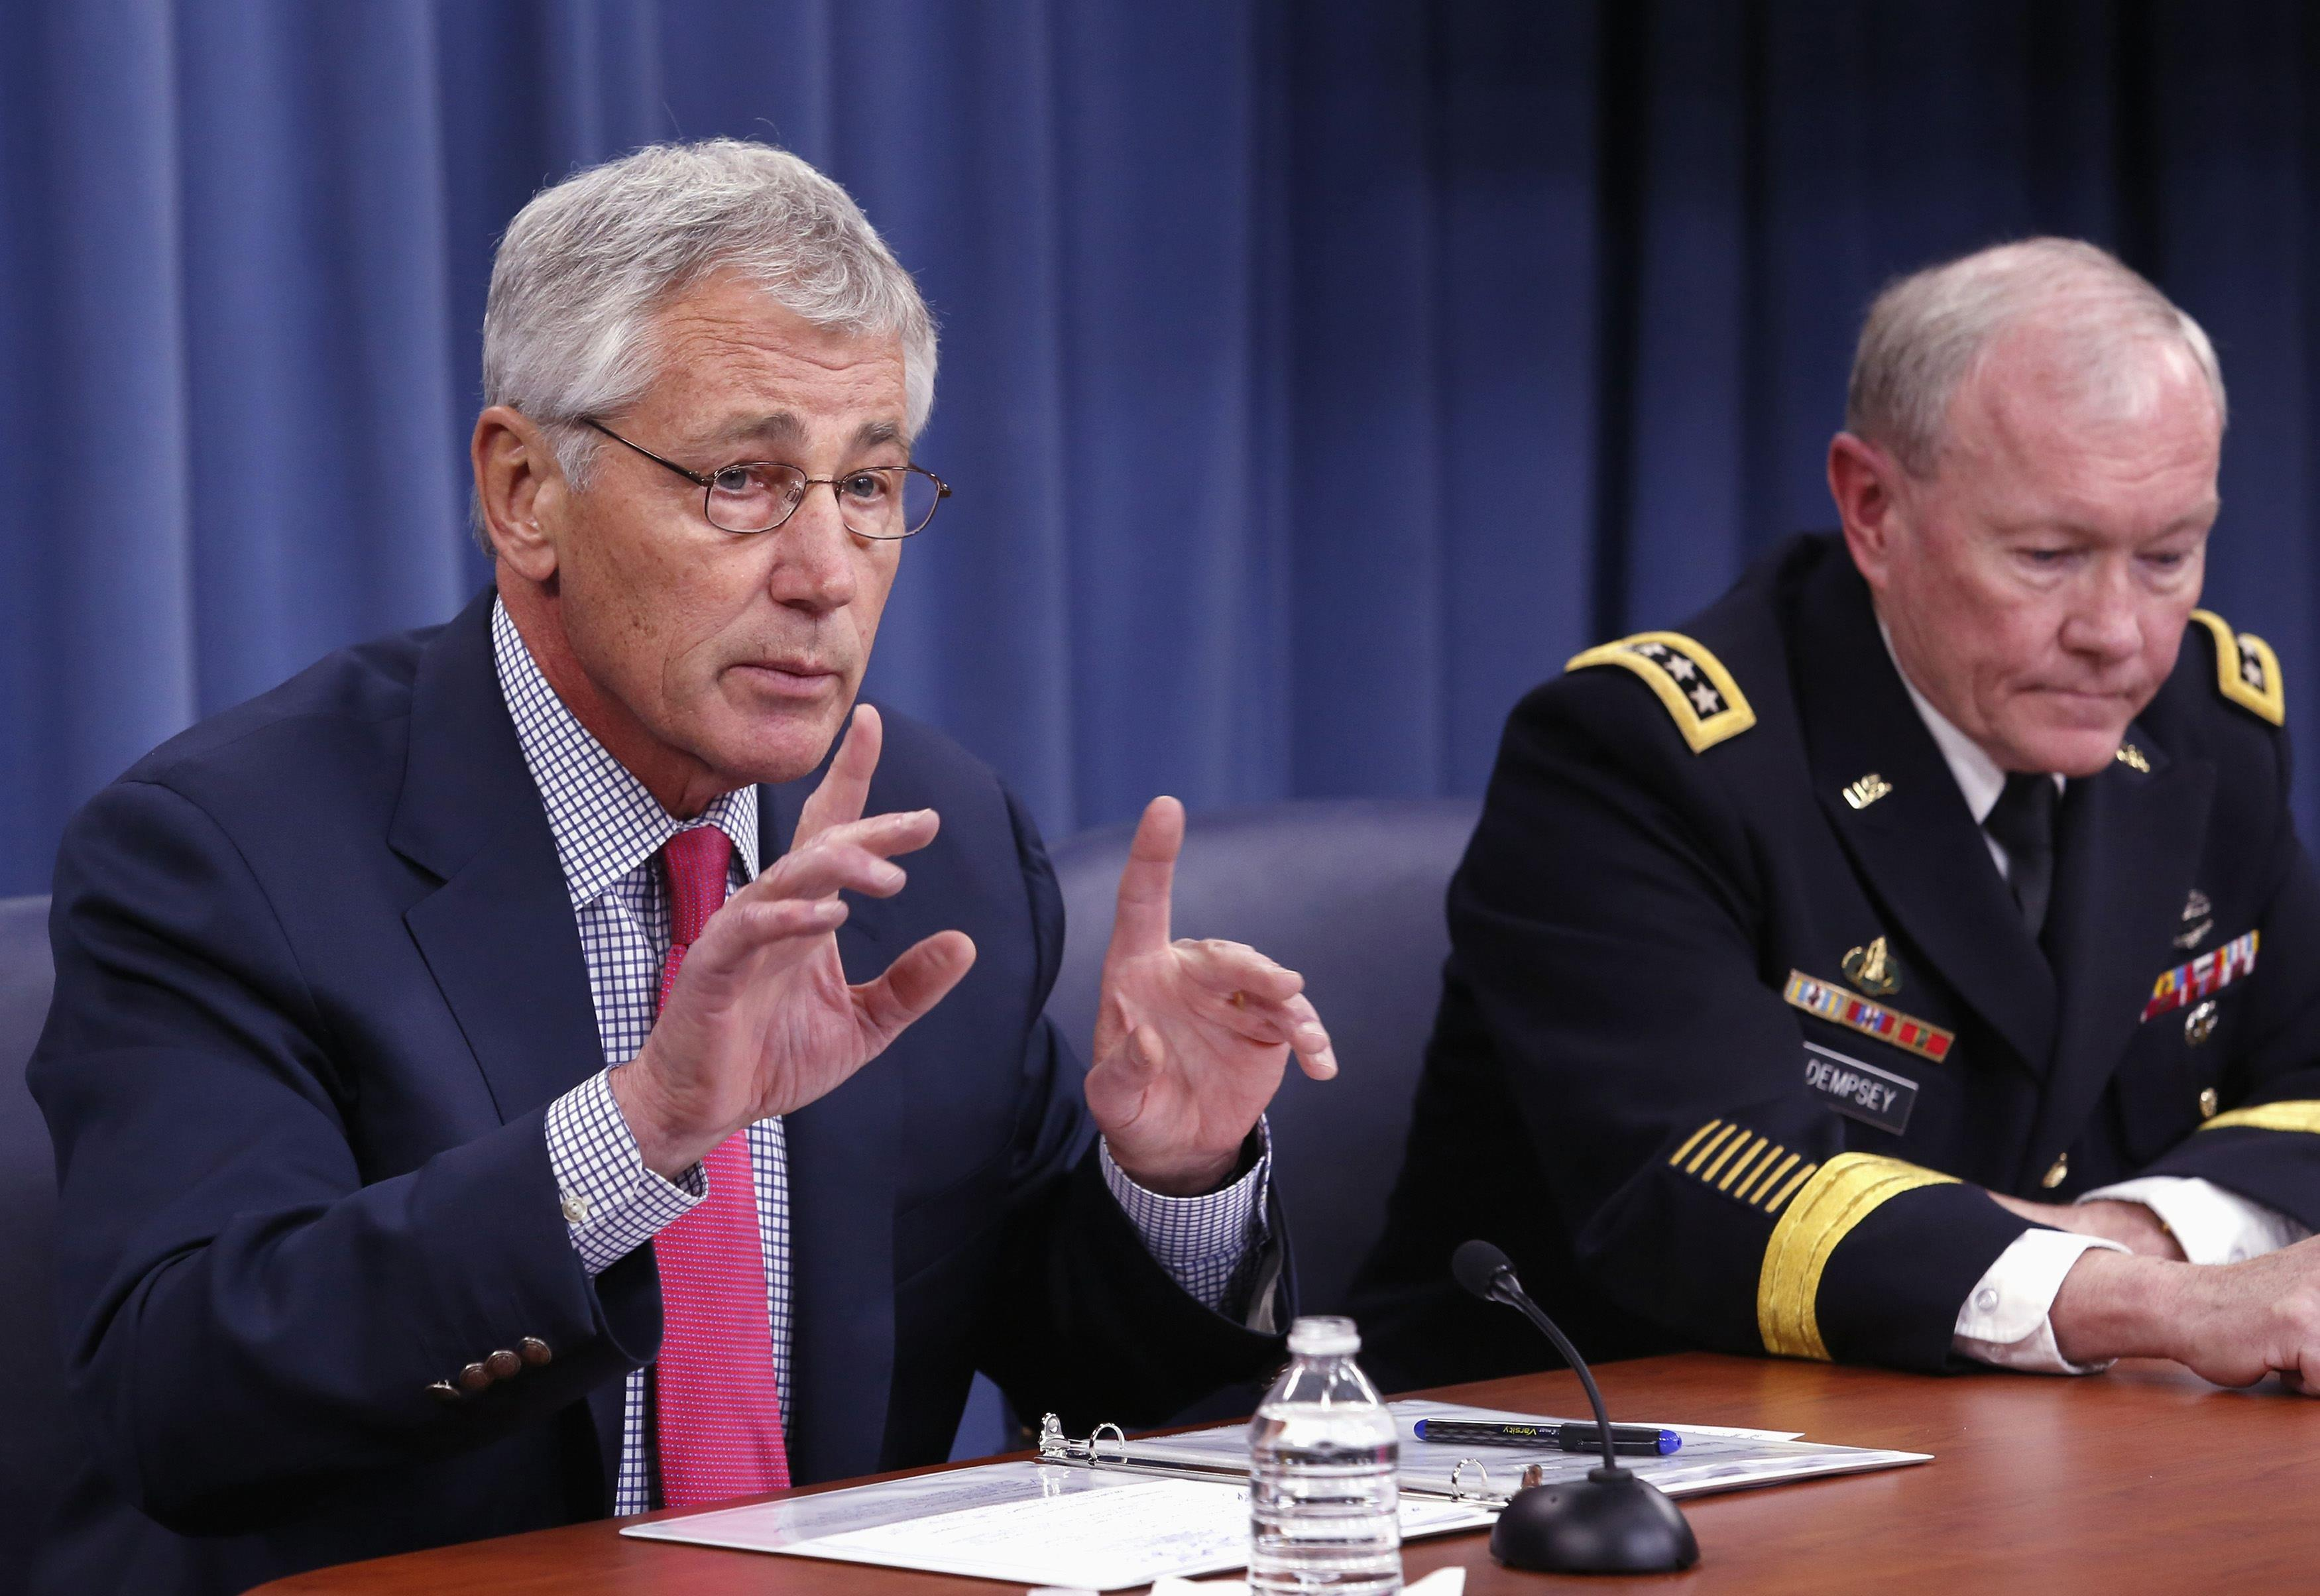 Image: U.S. Secretary of Defense Chuck Hagel speaks next to Chairman of the Joint Chiefs of Staff General Martin Dempsey during a media briefing at the Pentagon in Washington